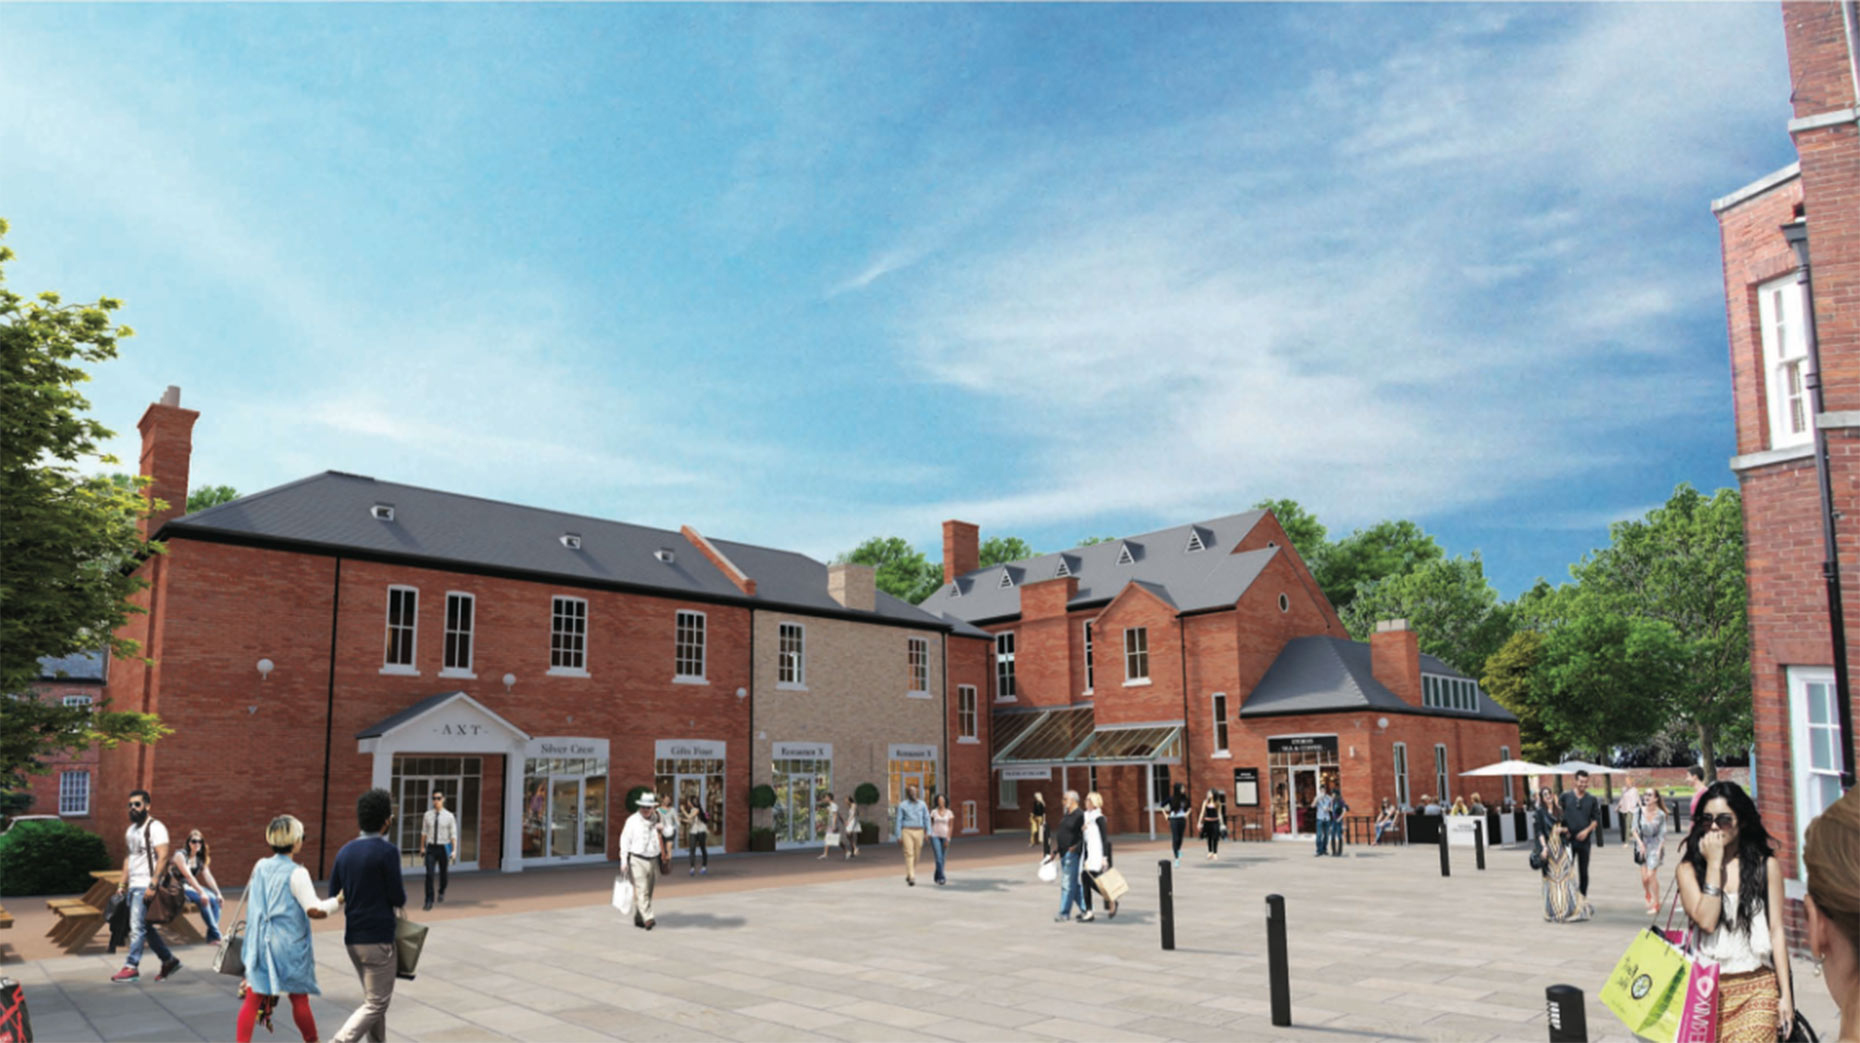 An artist's impression of how the main concourse between The Lawn and Charlotte House hotel would look under the first draft plans.